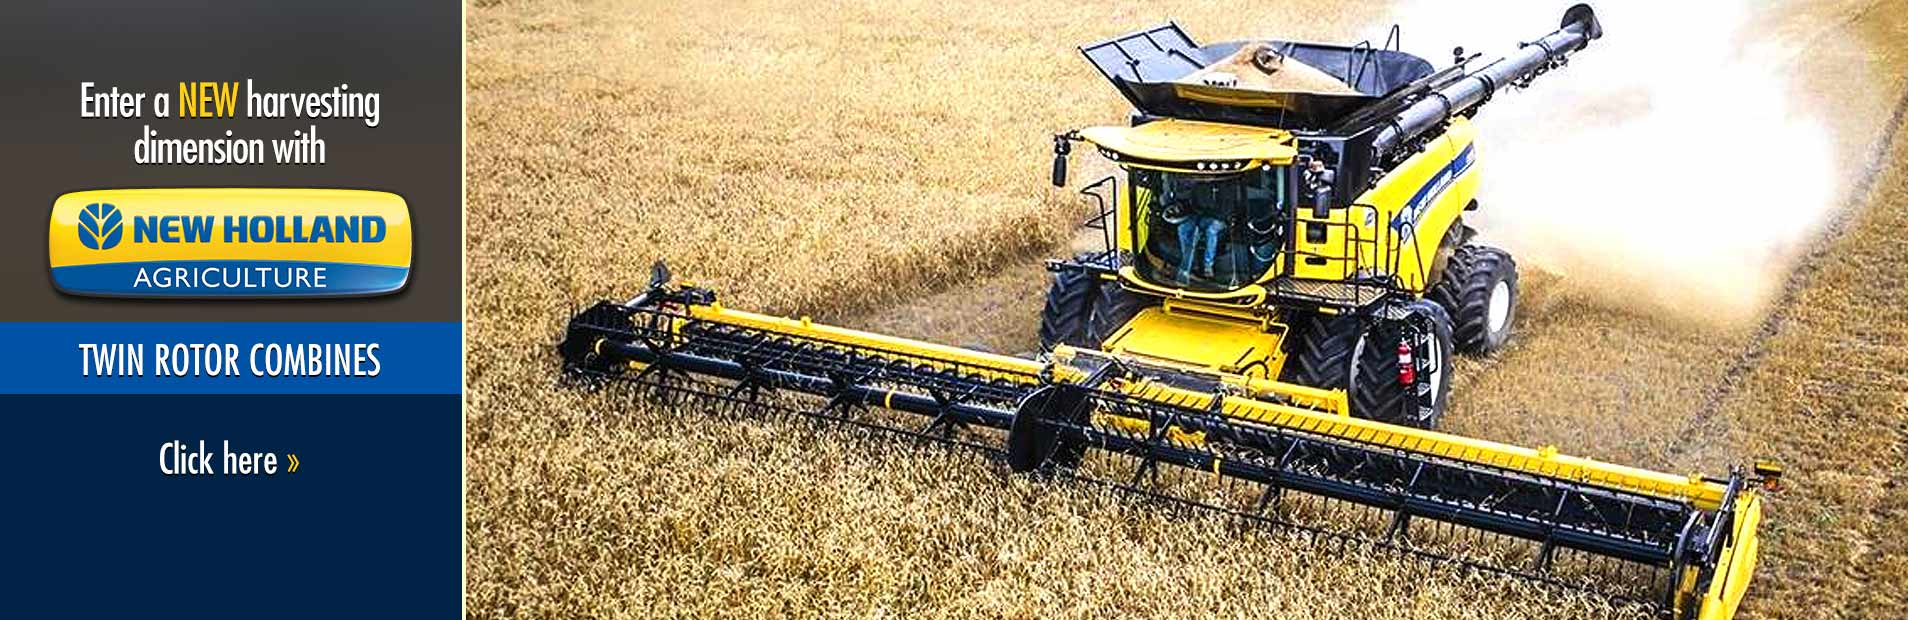 Enter a new harvesting dimension with New Holland twin rotor combines! Click here to view our select